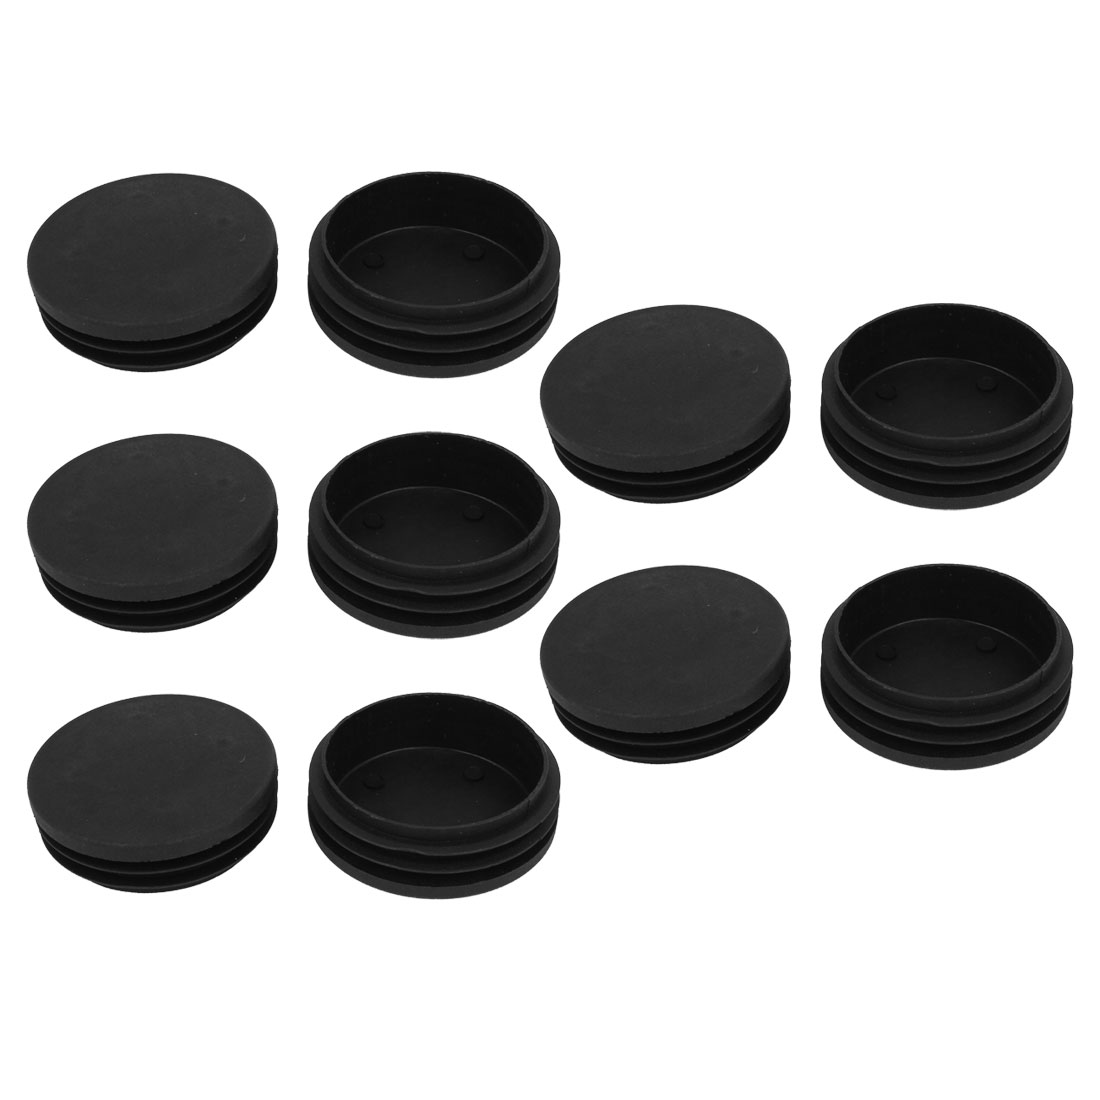 10 Pcs Black 74mm Plastic Blanking End Caps Insert Bung Round Tube Insert